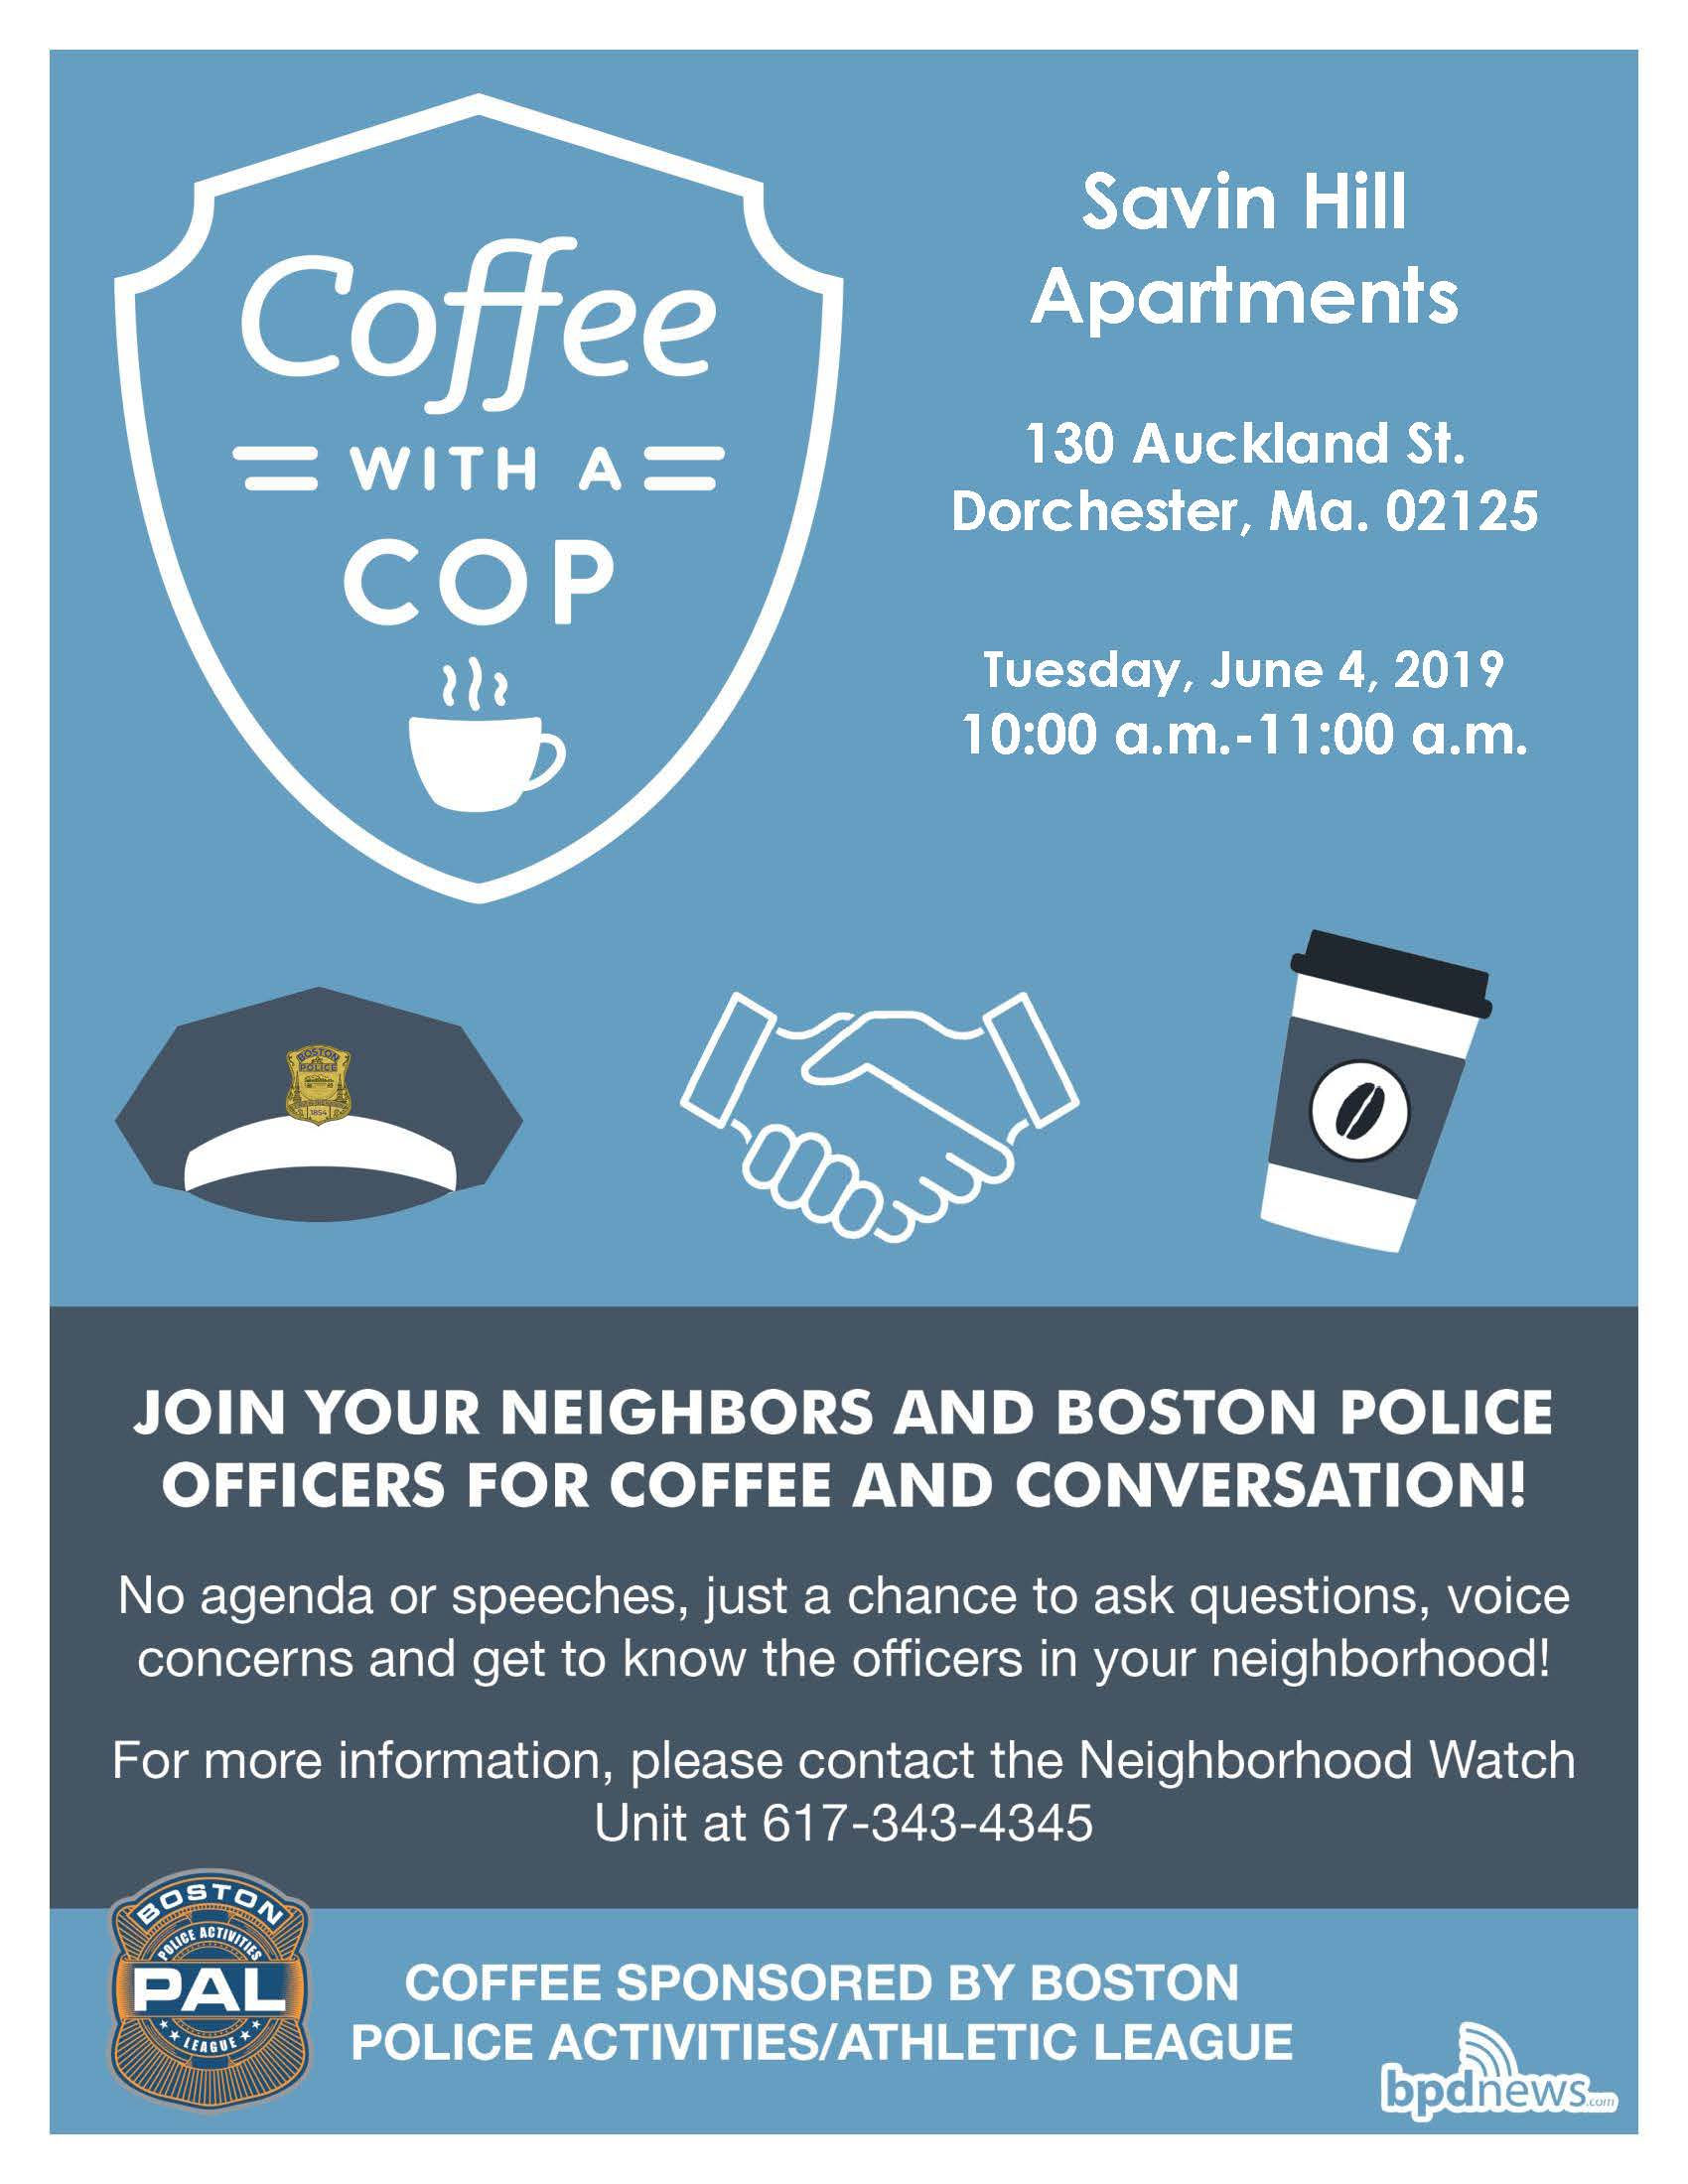 Savin Hill Apts Coffee with a Cop.jpg